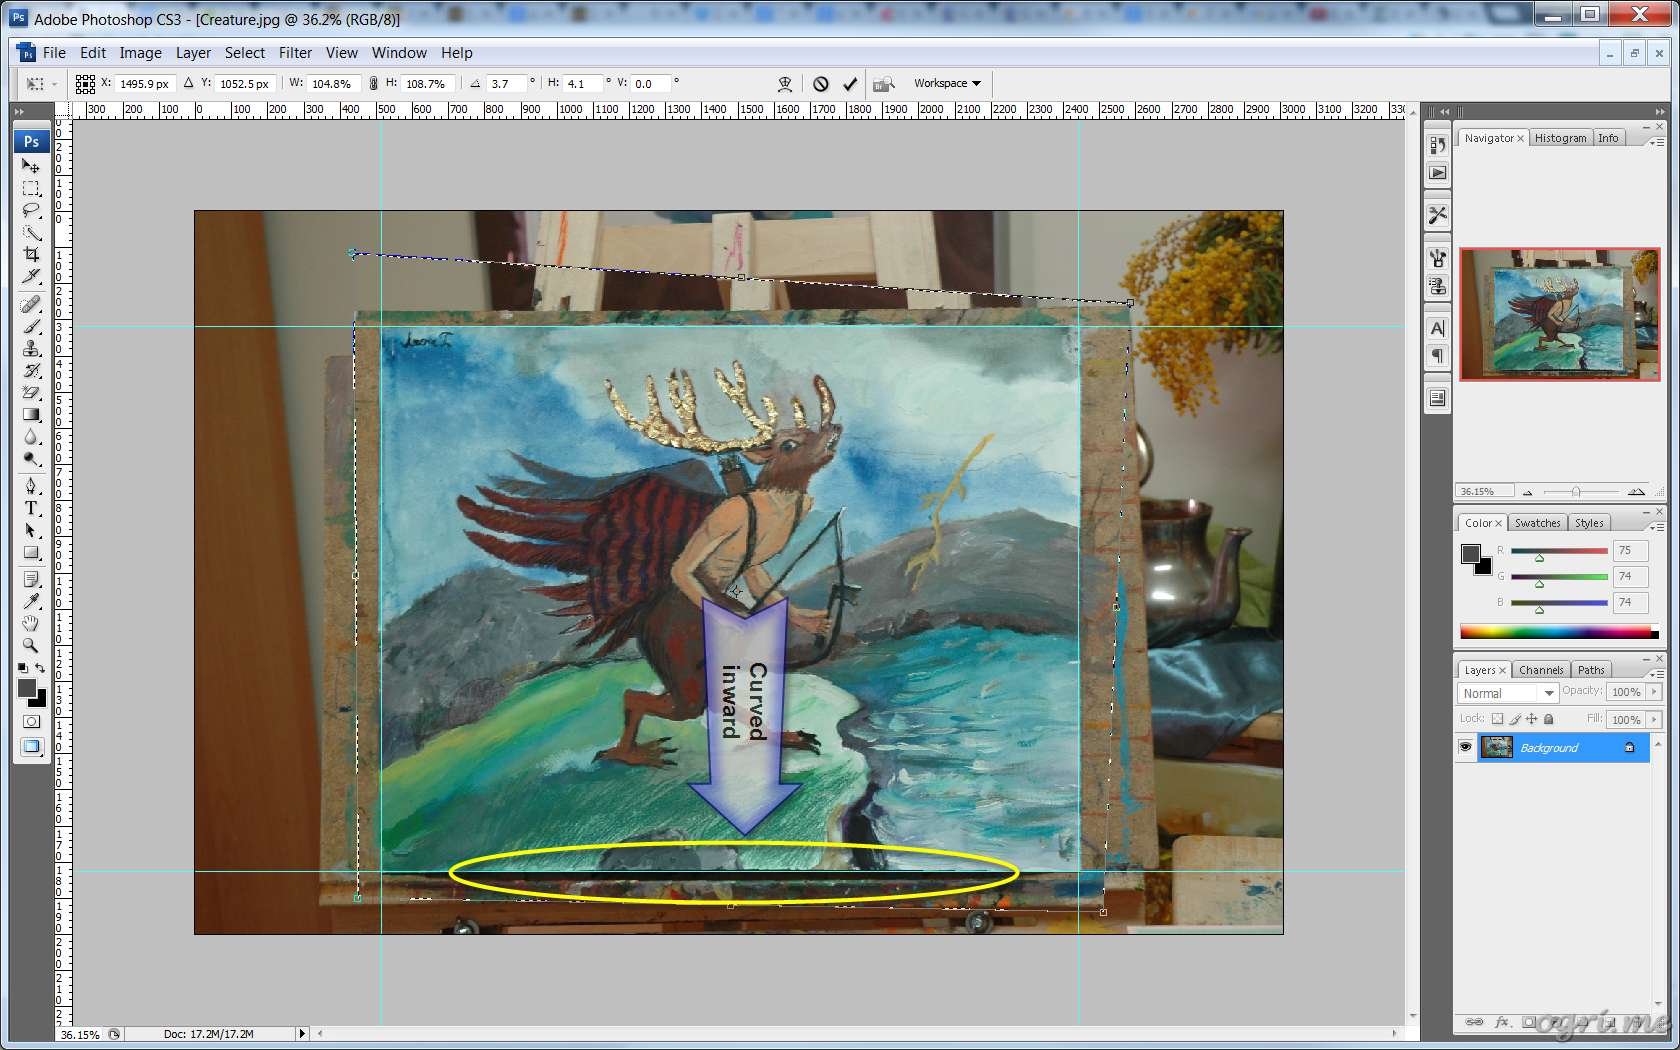 ogri.me | Photoshop: Processing photos of paintings for online gallery #06